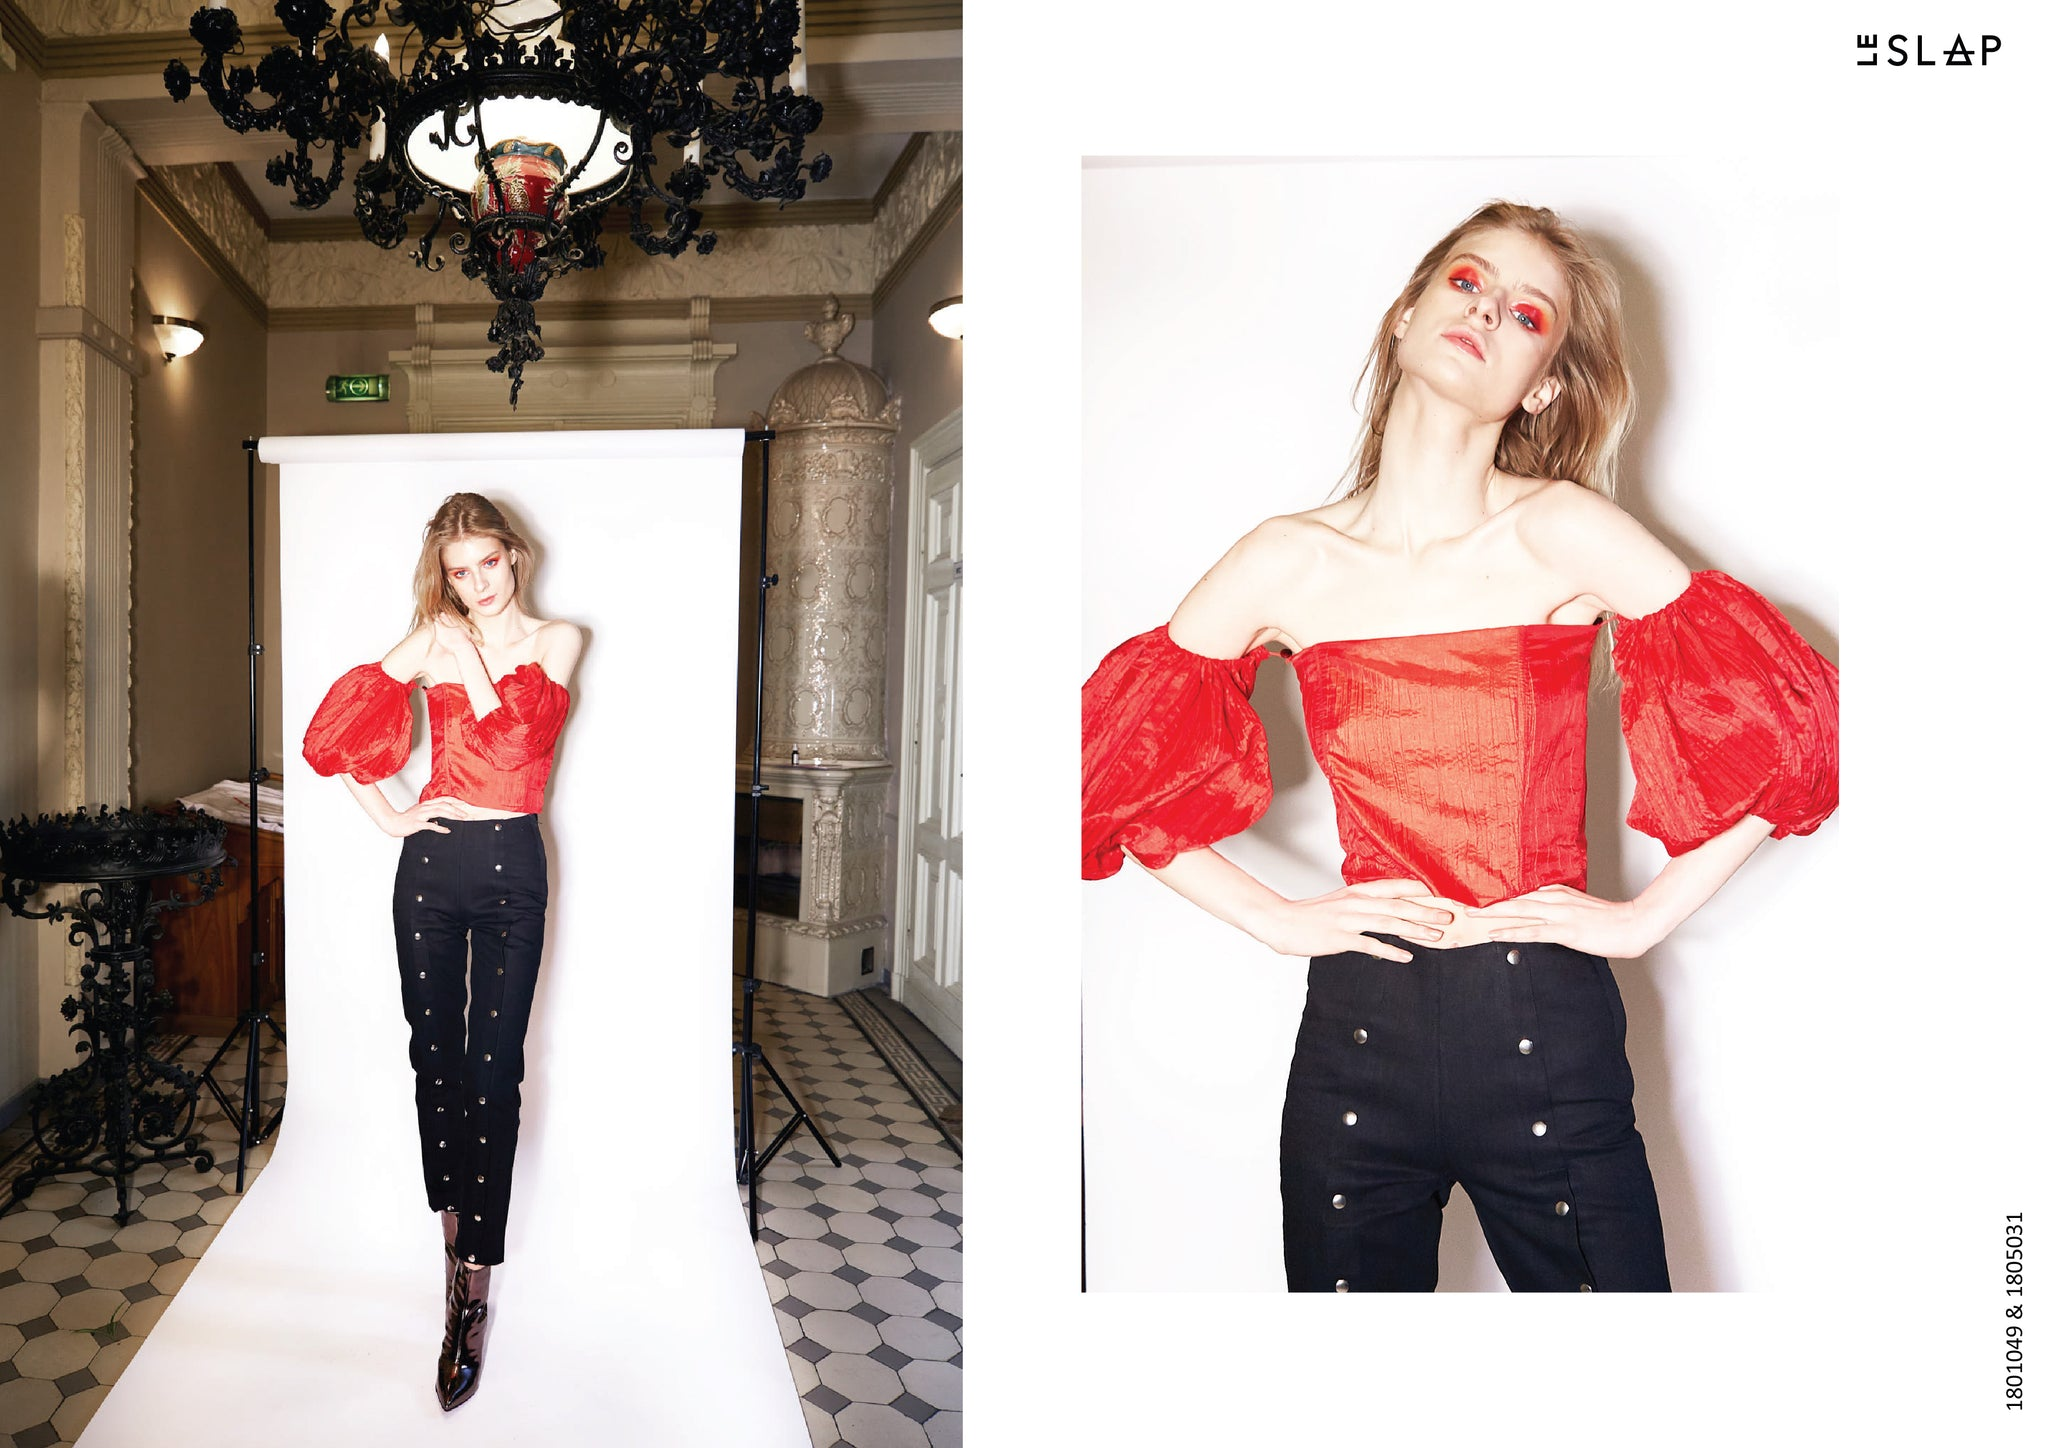 Le SLAP clothing brand lookbook statement fashion photoshoot Red volume sleeve top and Front Button Black Denim Jeans